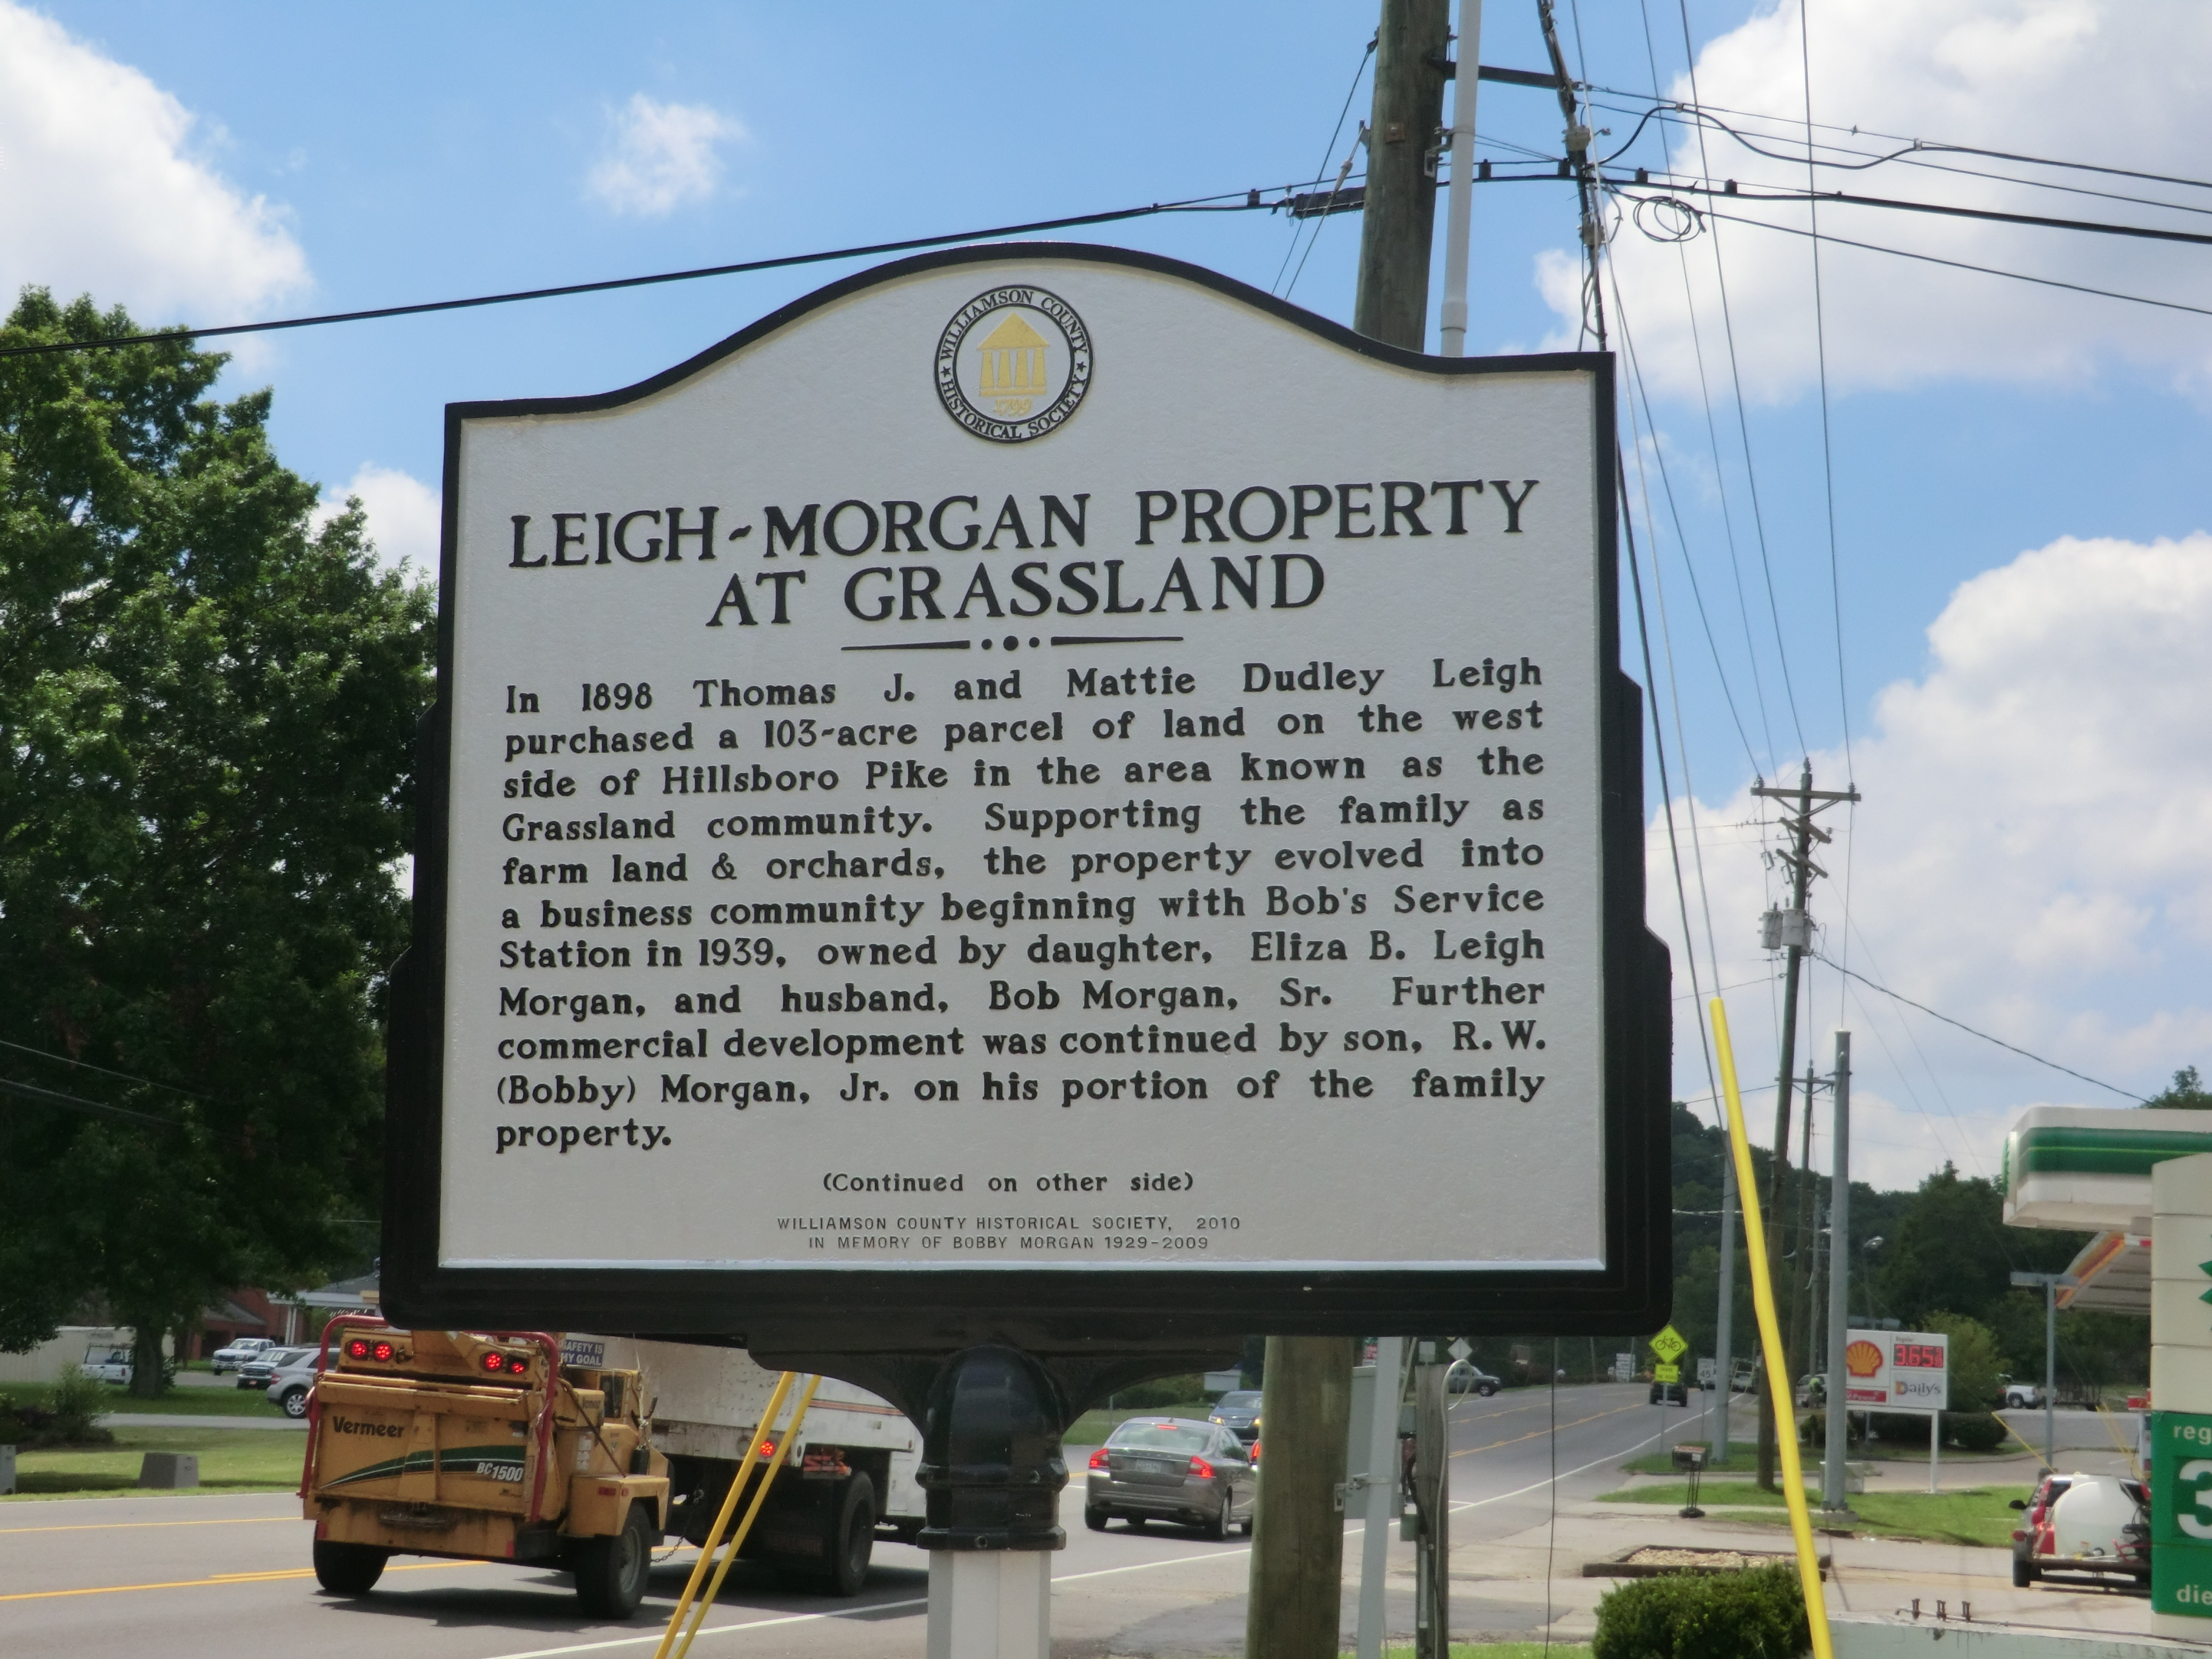 Side One - - Leigh-Morgan Property at Grassland Marker